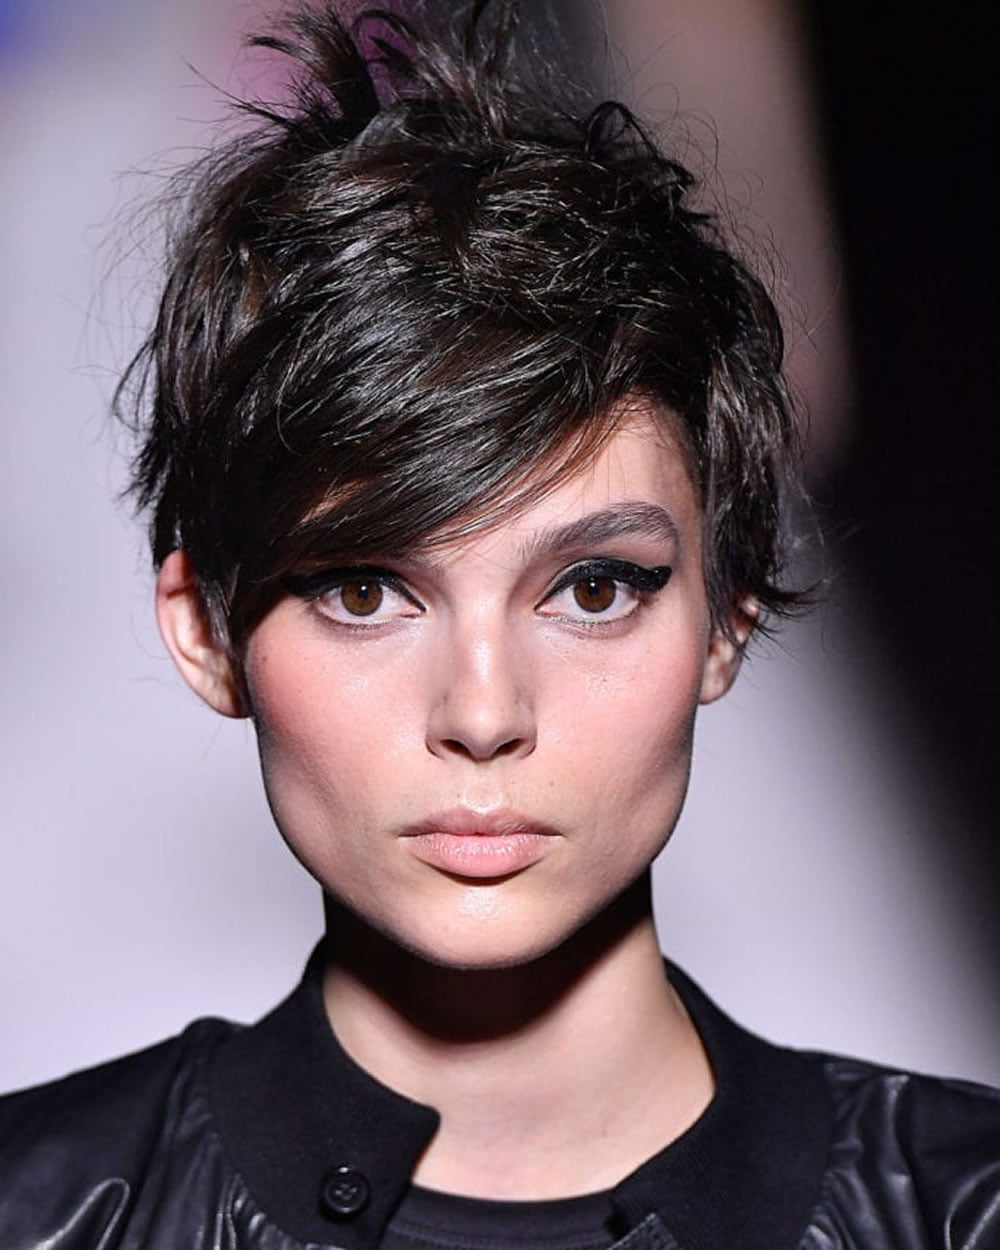 Short Hair Cuts For Women Bob And Pixie To Make You Feel